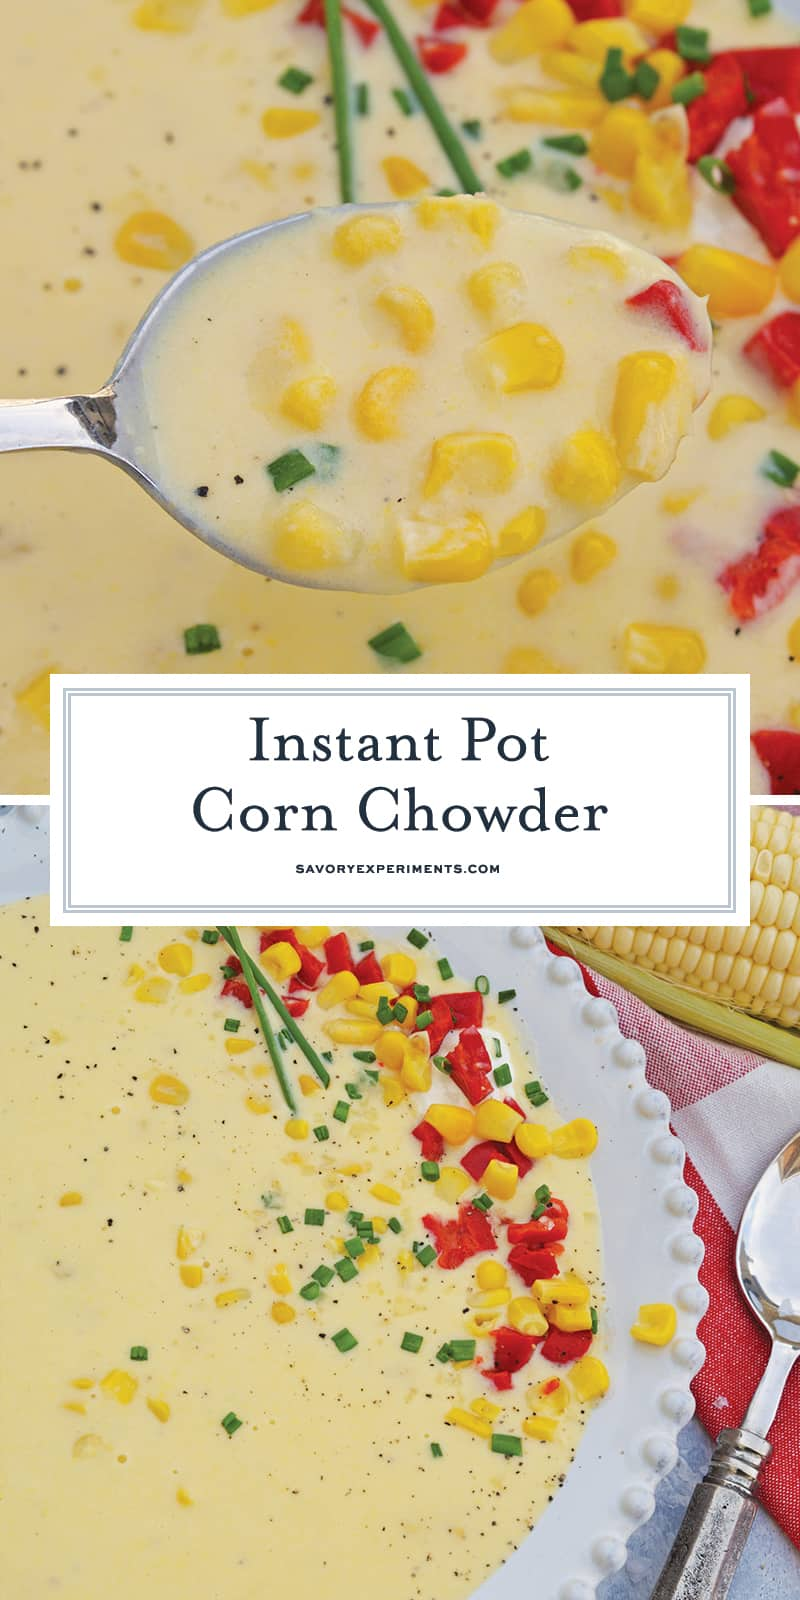 Instant Pot Corn Chowder turns an already easy corn chowder recipe into a quick, FLAVORFUL and delicious potato corn chowder. Perfect for fall! #cornchowderrecipe #instantpotcornchowder #potatocornchowder www.savoryexperiments.com